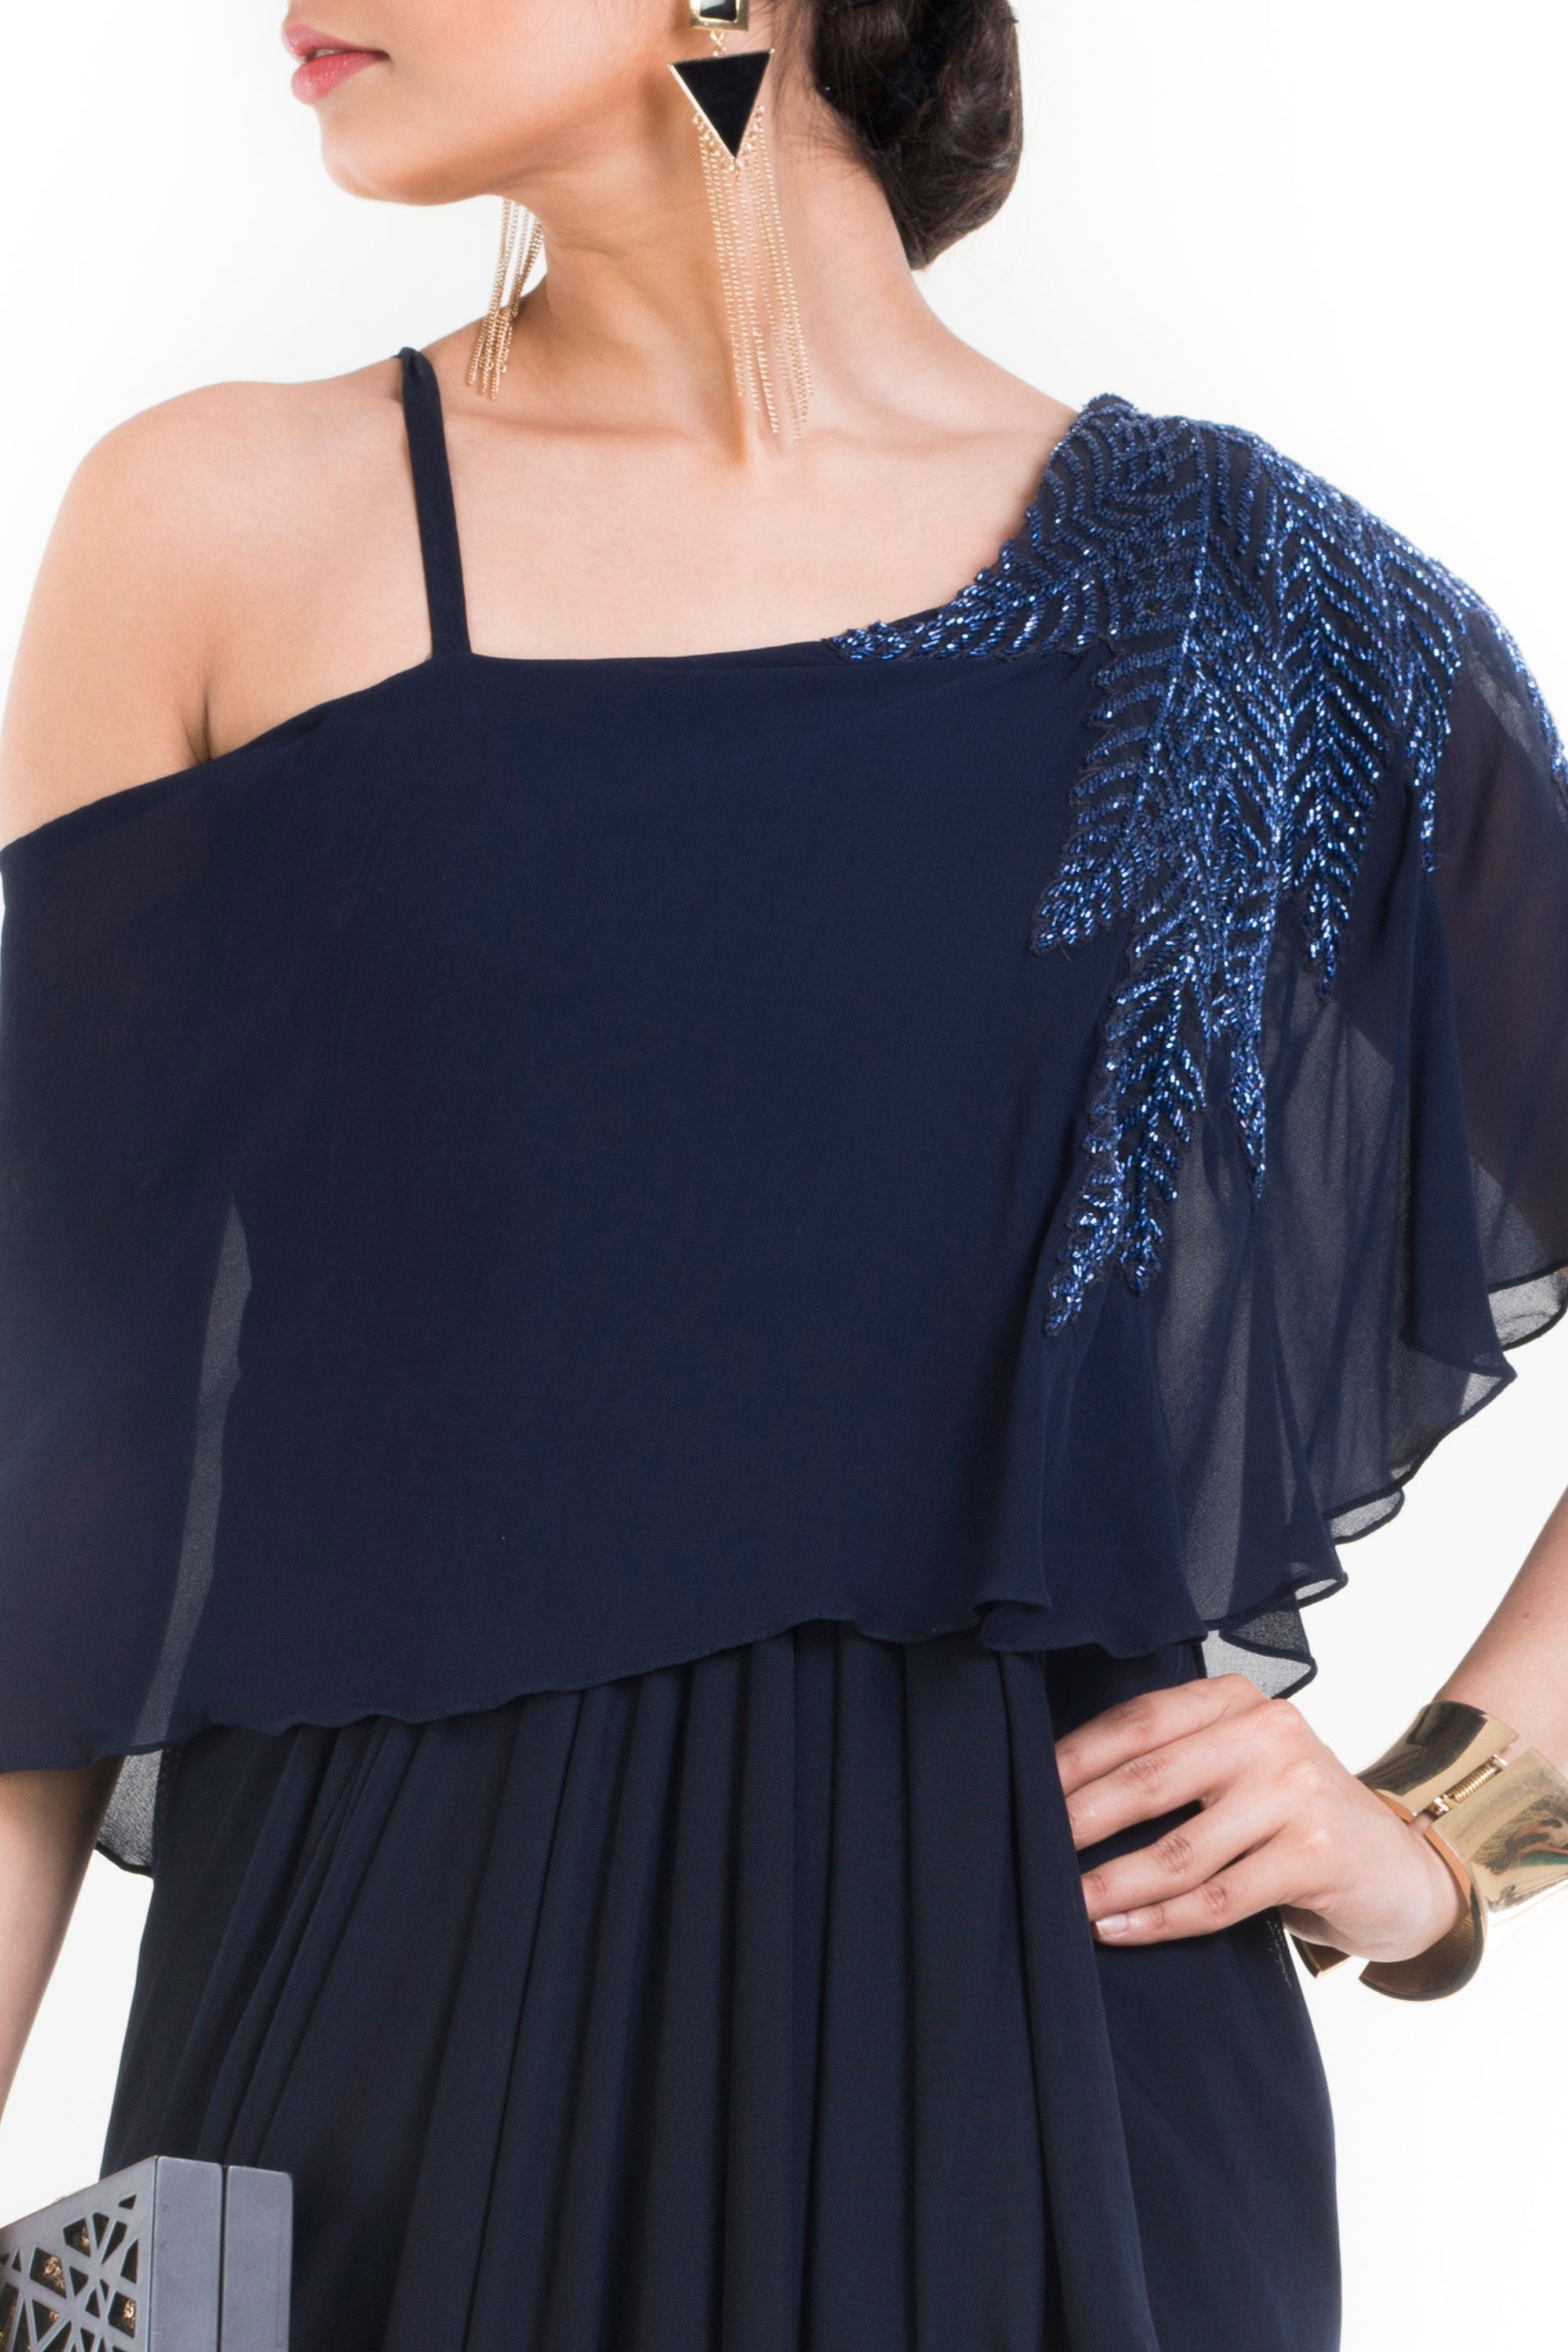 Navy Blue Lift Up Dress With One Sided Drop Shoulder Cape Closeup